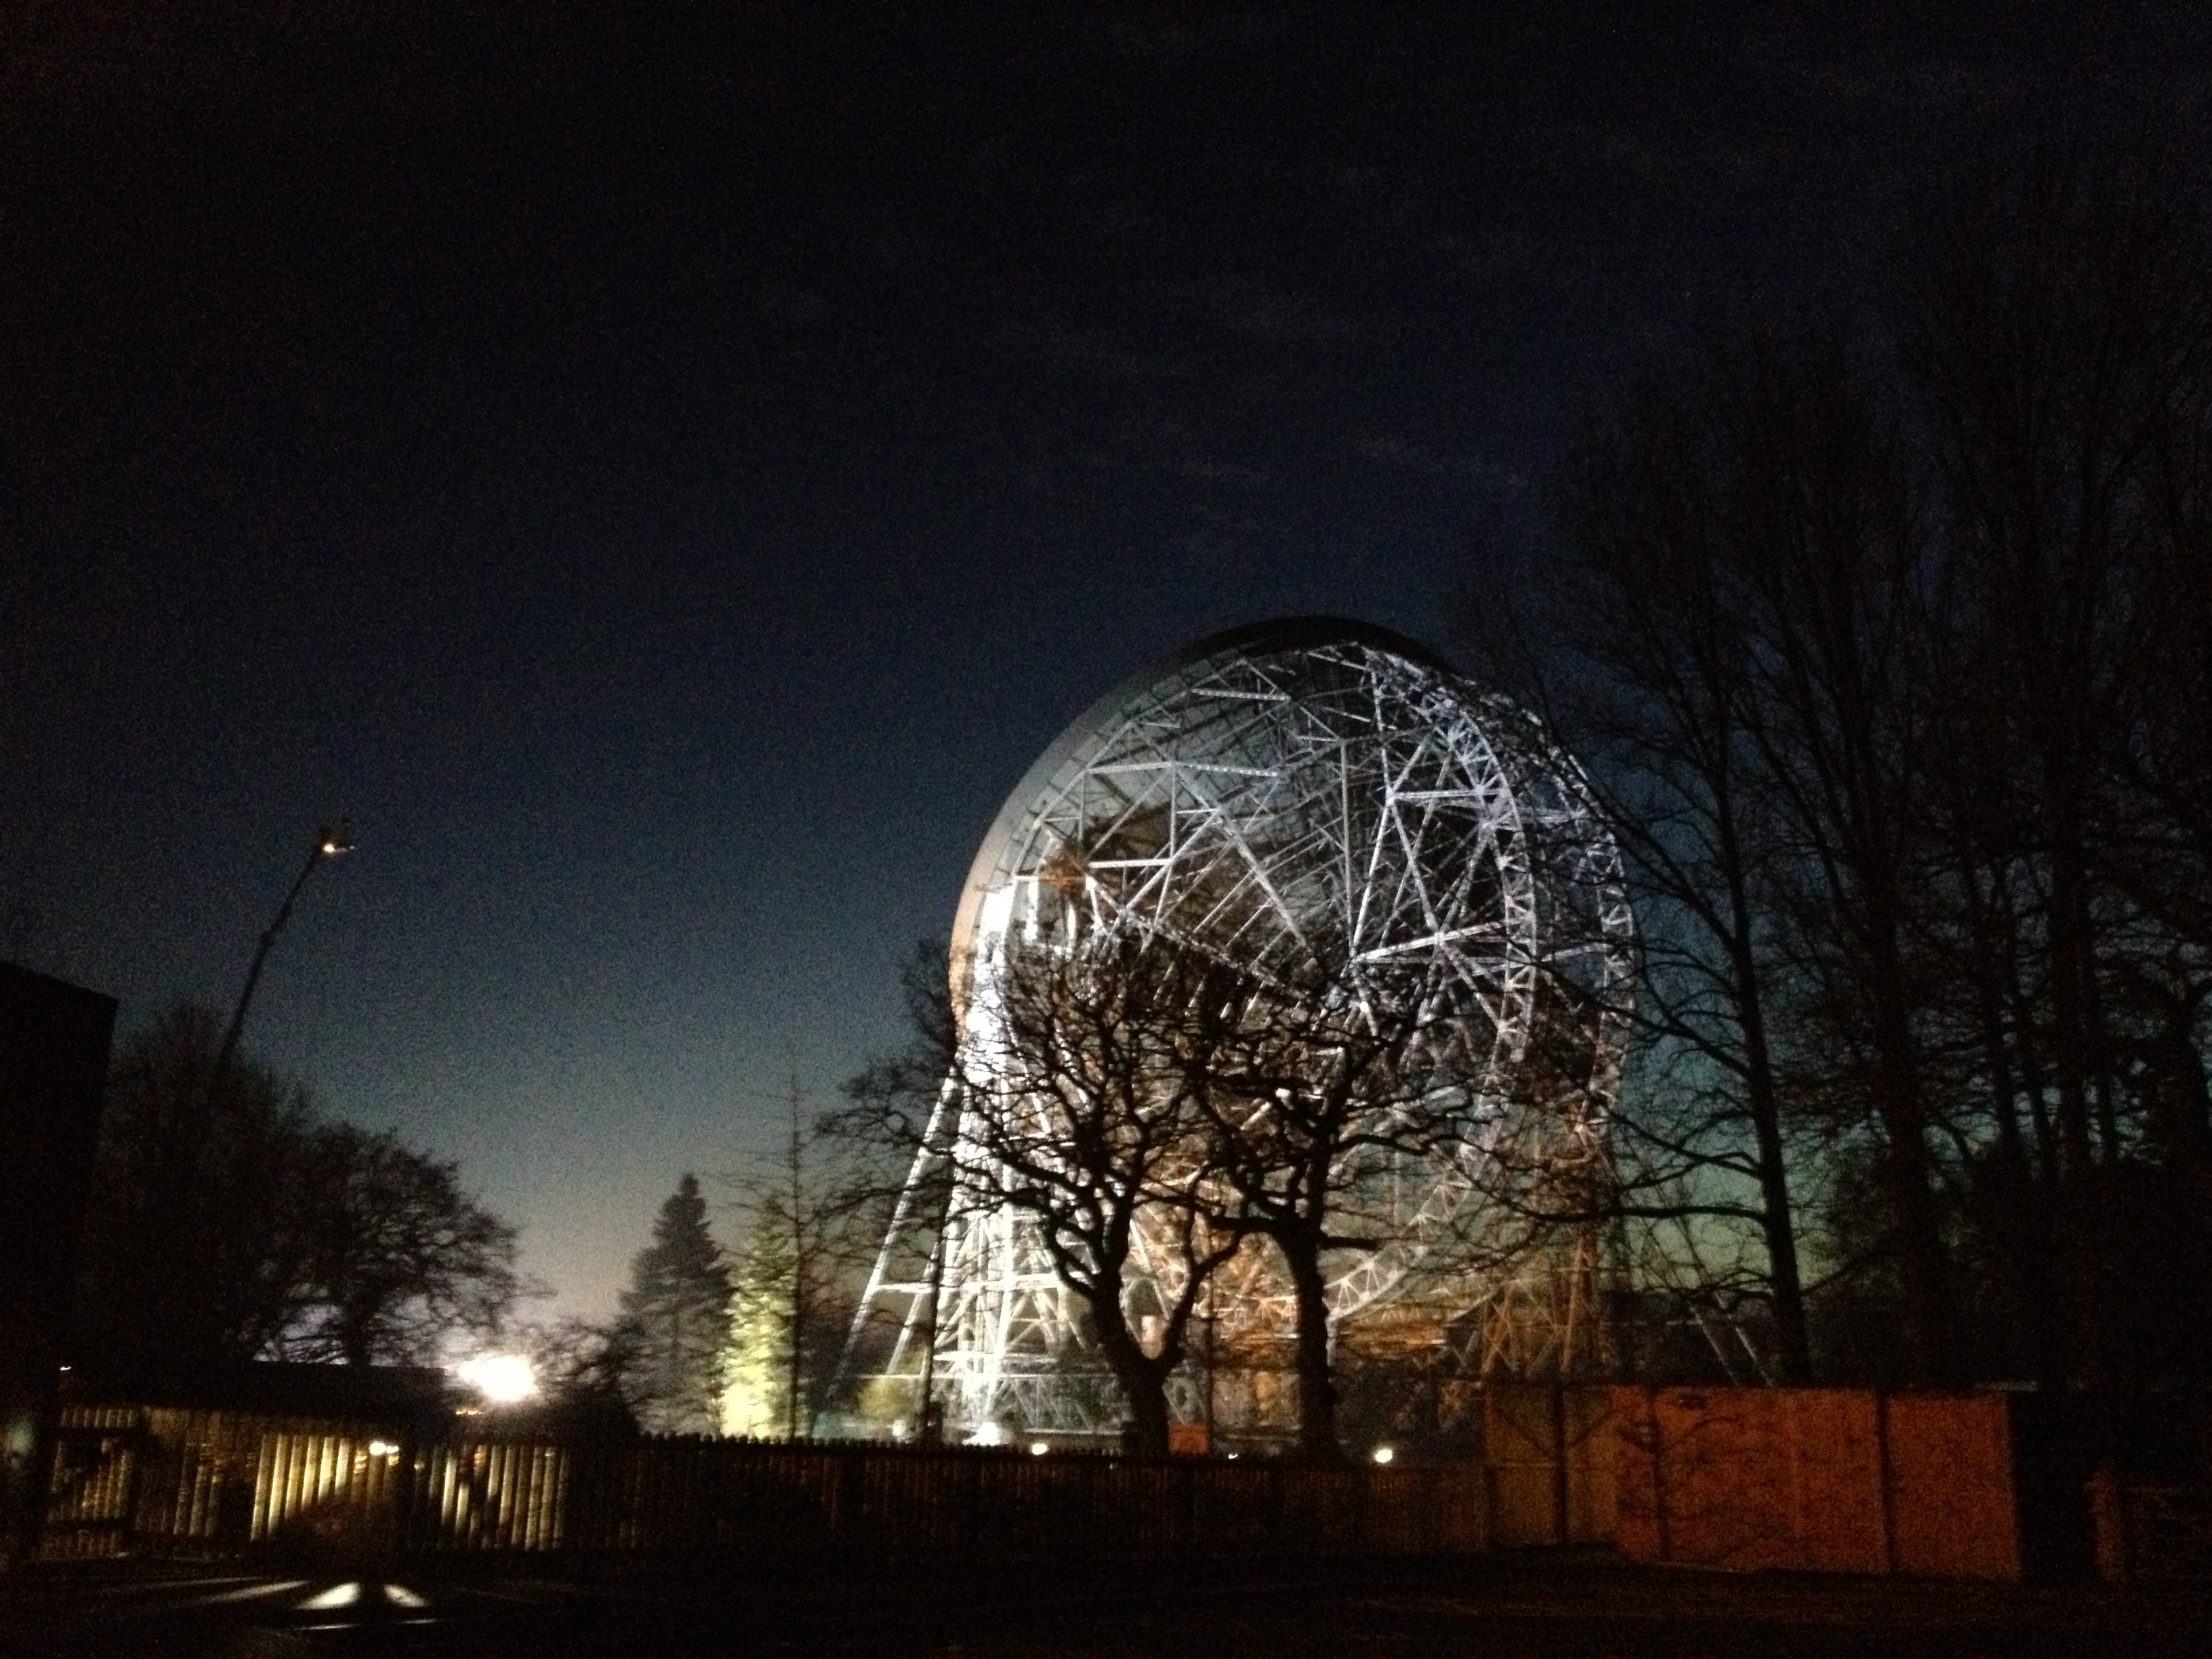 The Lovell Telescope (floodlit at night, facing away from the camera) at Jodrell Bank, at BBC Stargazing Live 2013, Wednesday 9th January 2013